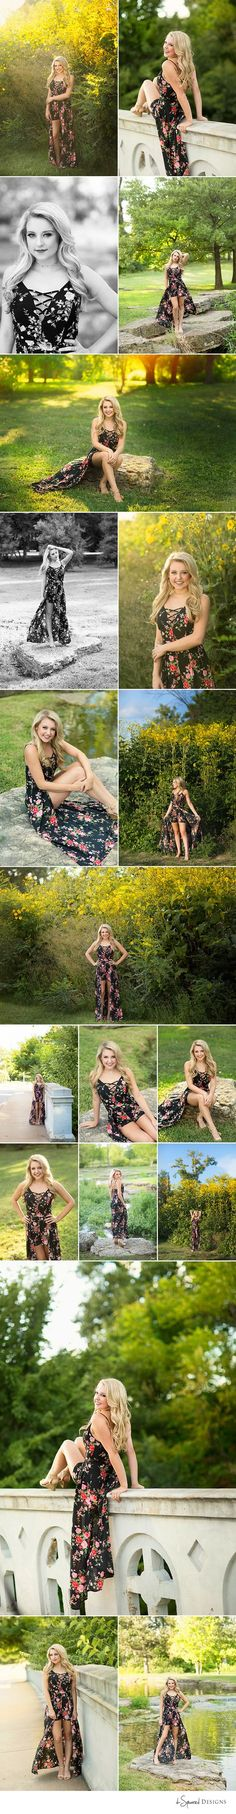 Summer Senior Photography. St. Louis Senior Photography. d-Squared Designs. Missouri Senior Photographer. Southeast Missouri Senior Photographer. Beautiful senior. Senior posing.